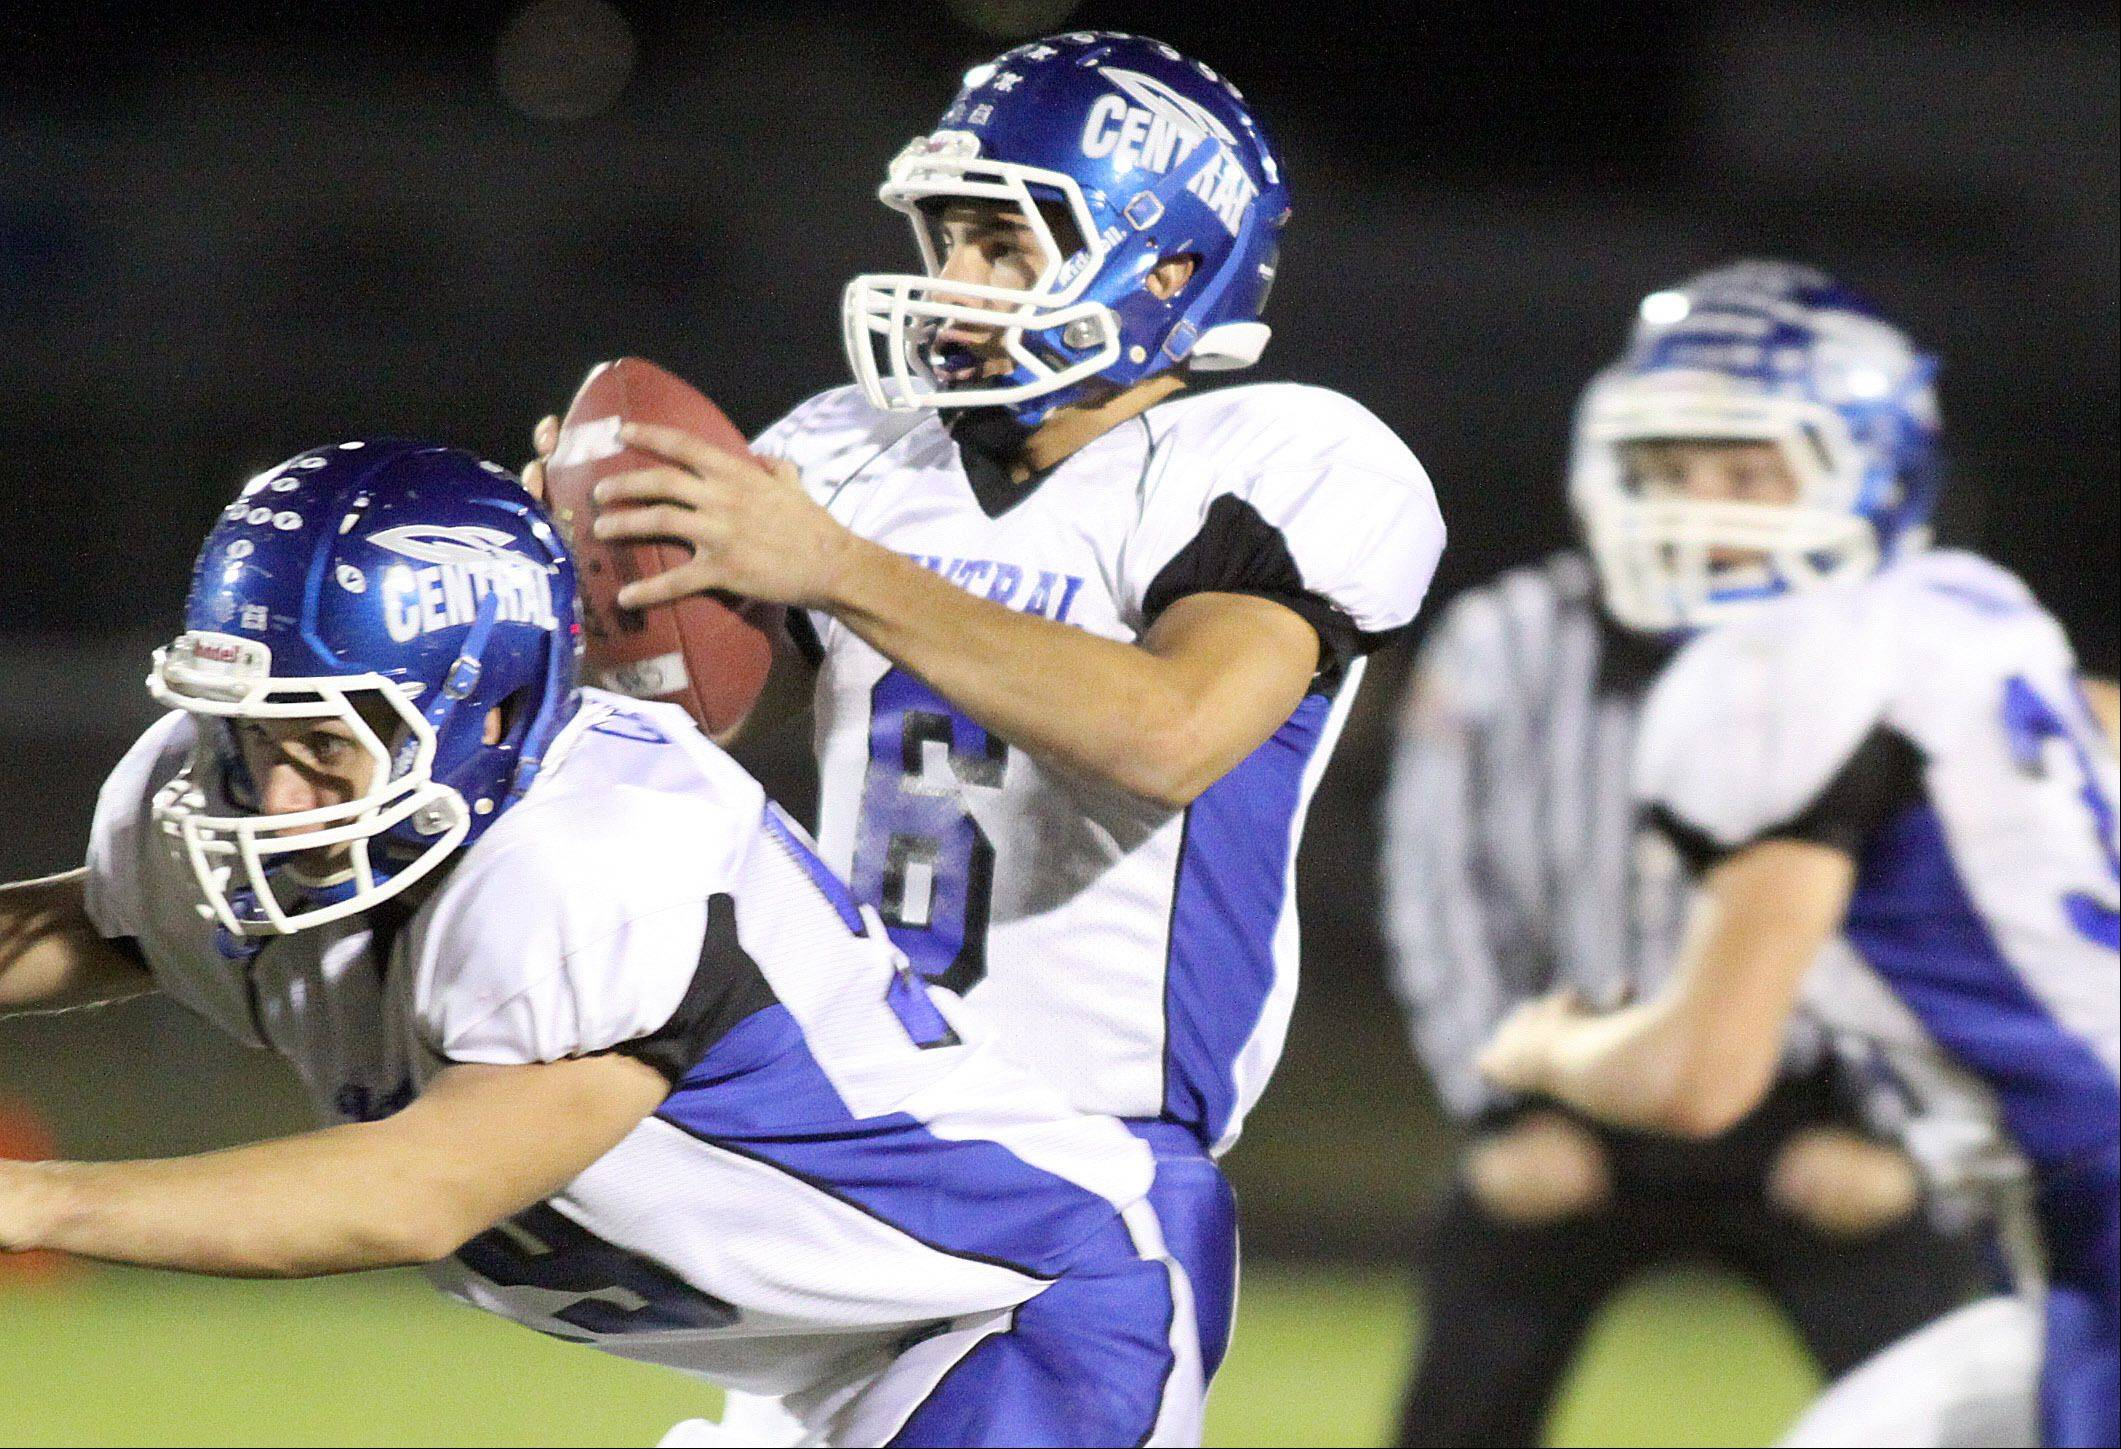 Burlington Central's quarterback Tyler Majewski prepares to throw the ball during a varsity football game at Rod Poppe Field in Marengo on Friday night.